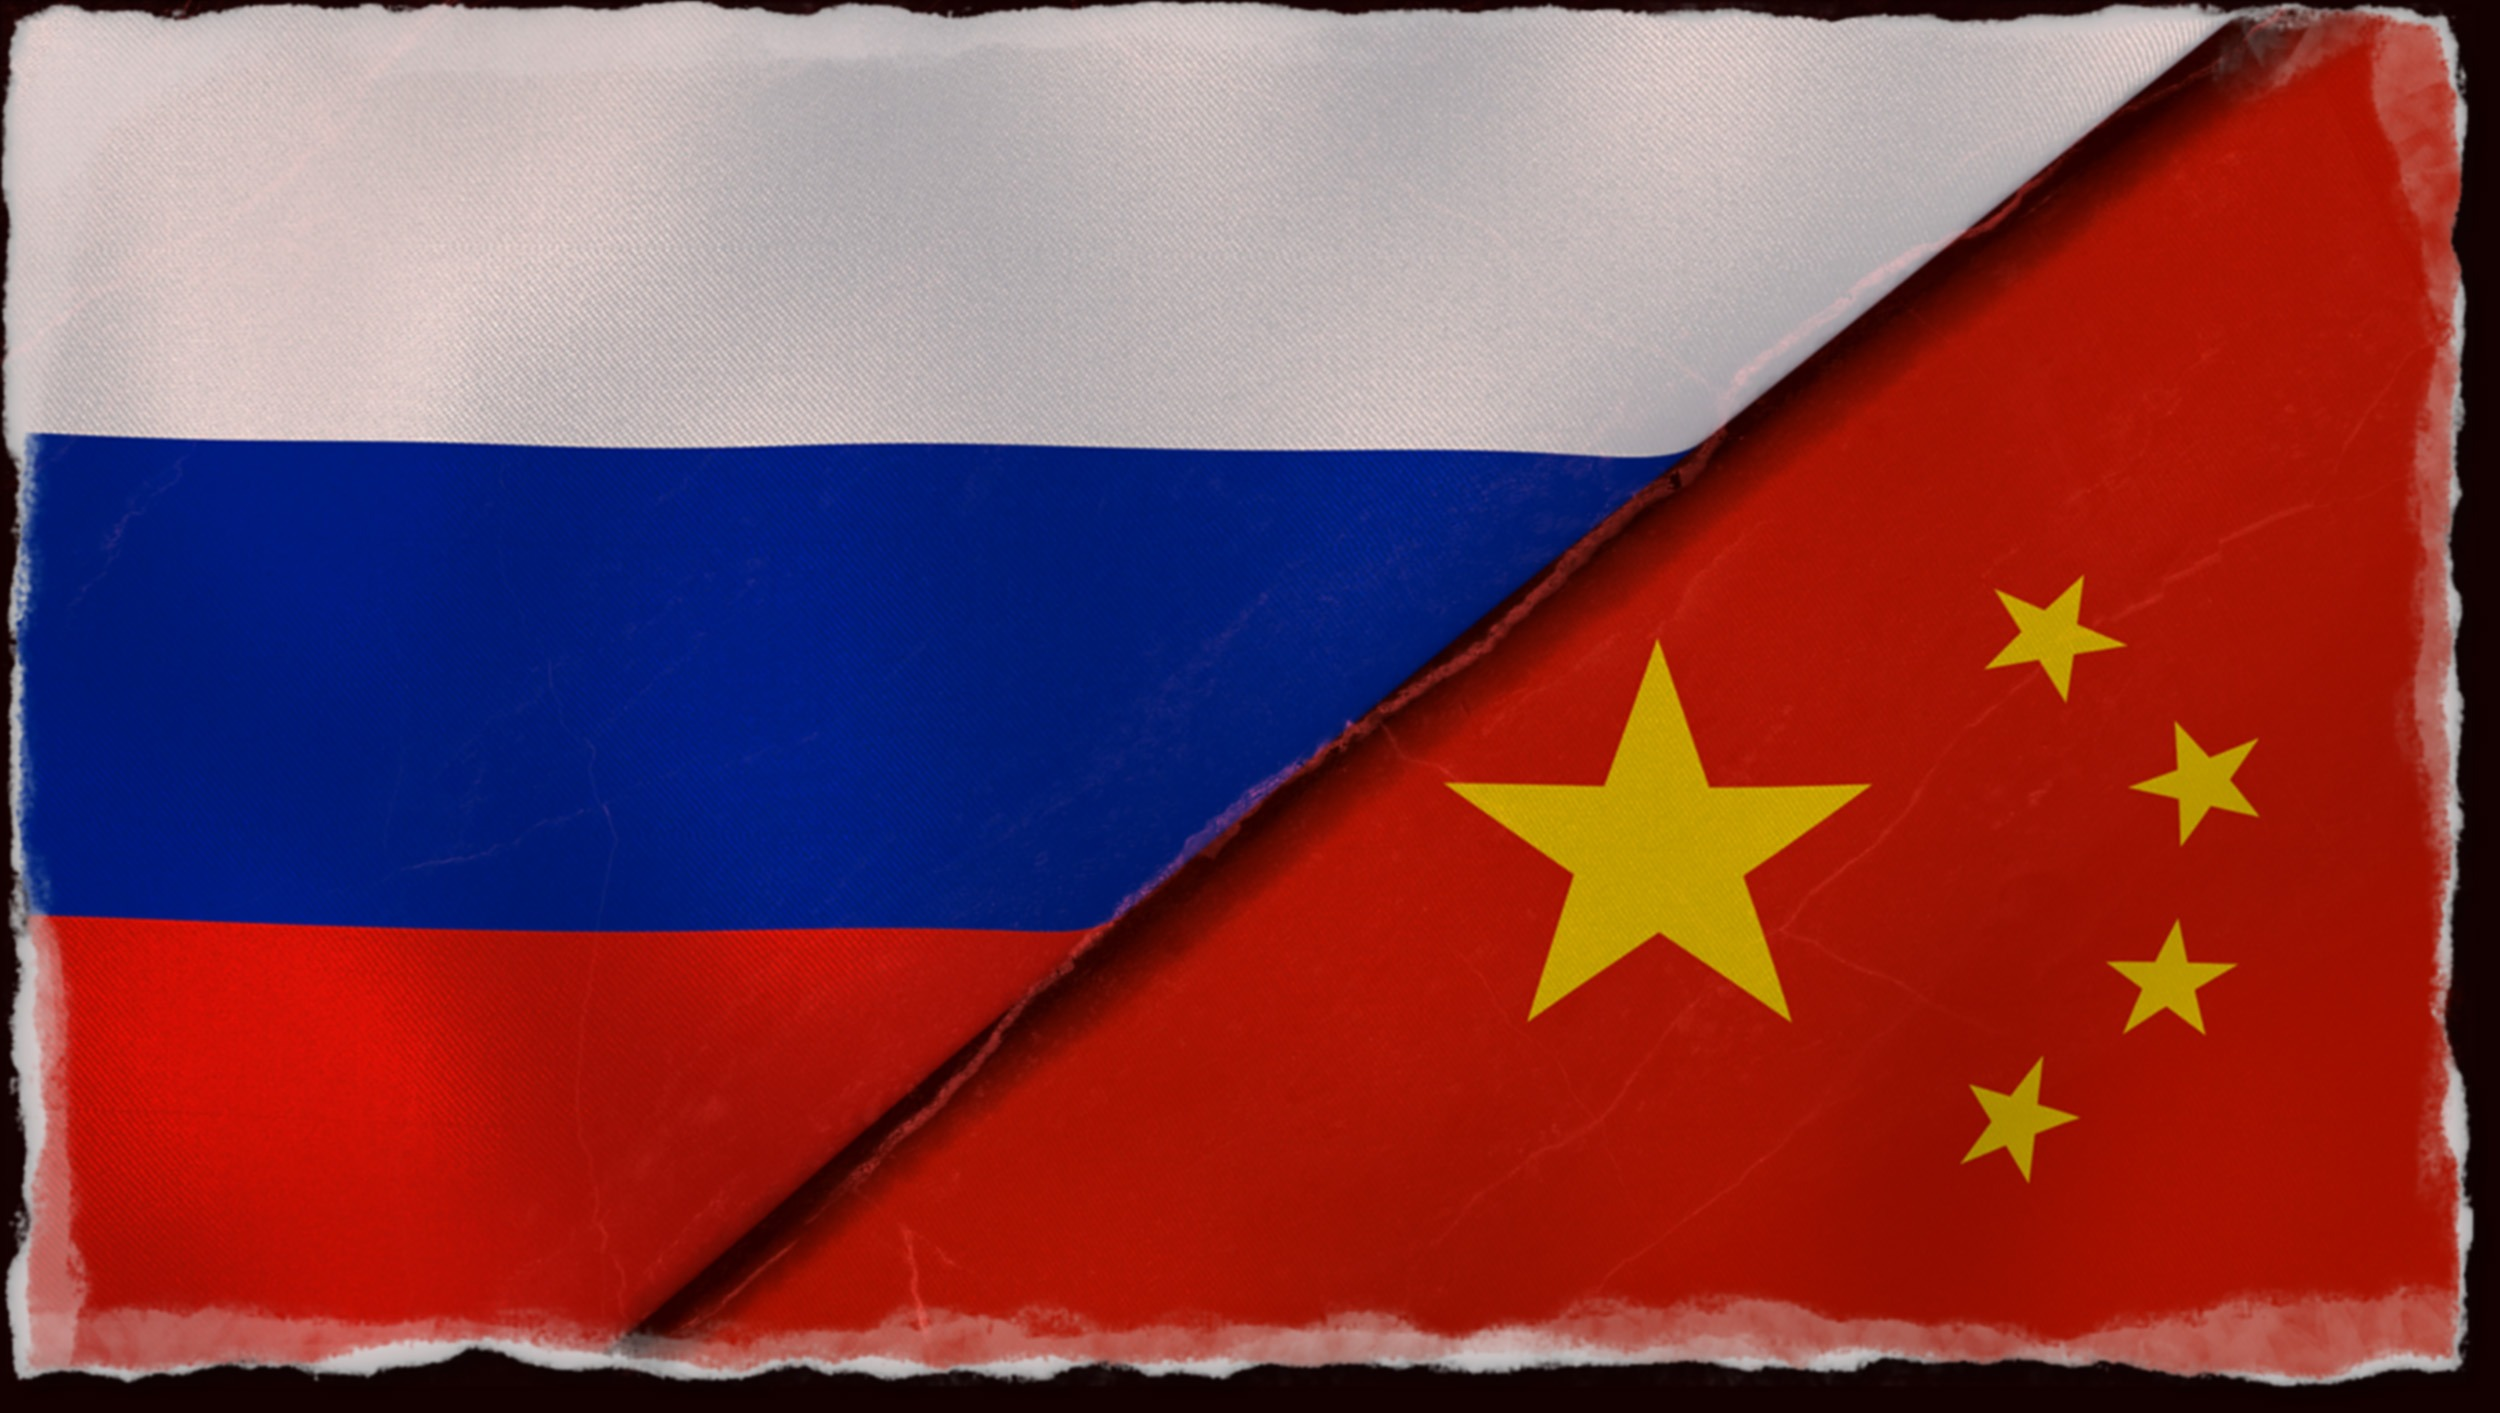 Russia-China Relations: Deepening Cooperation and Avoiding An Alliance